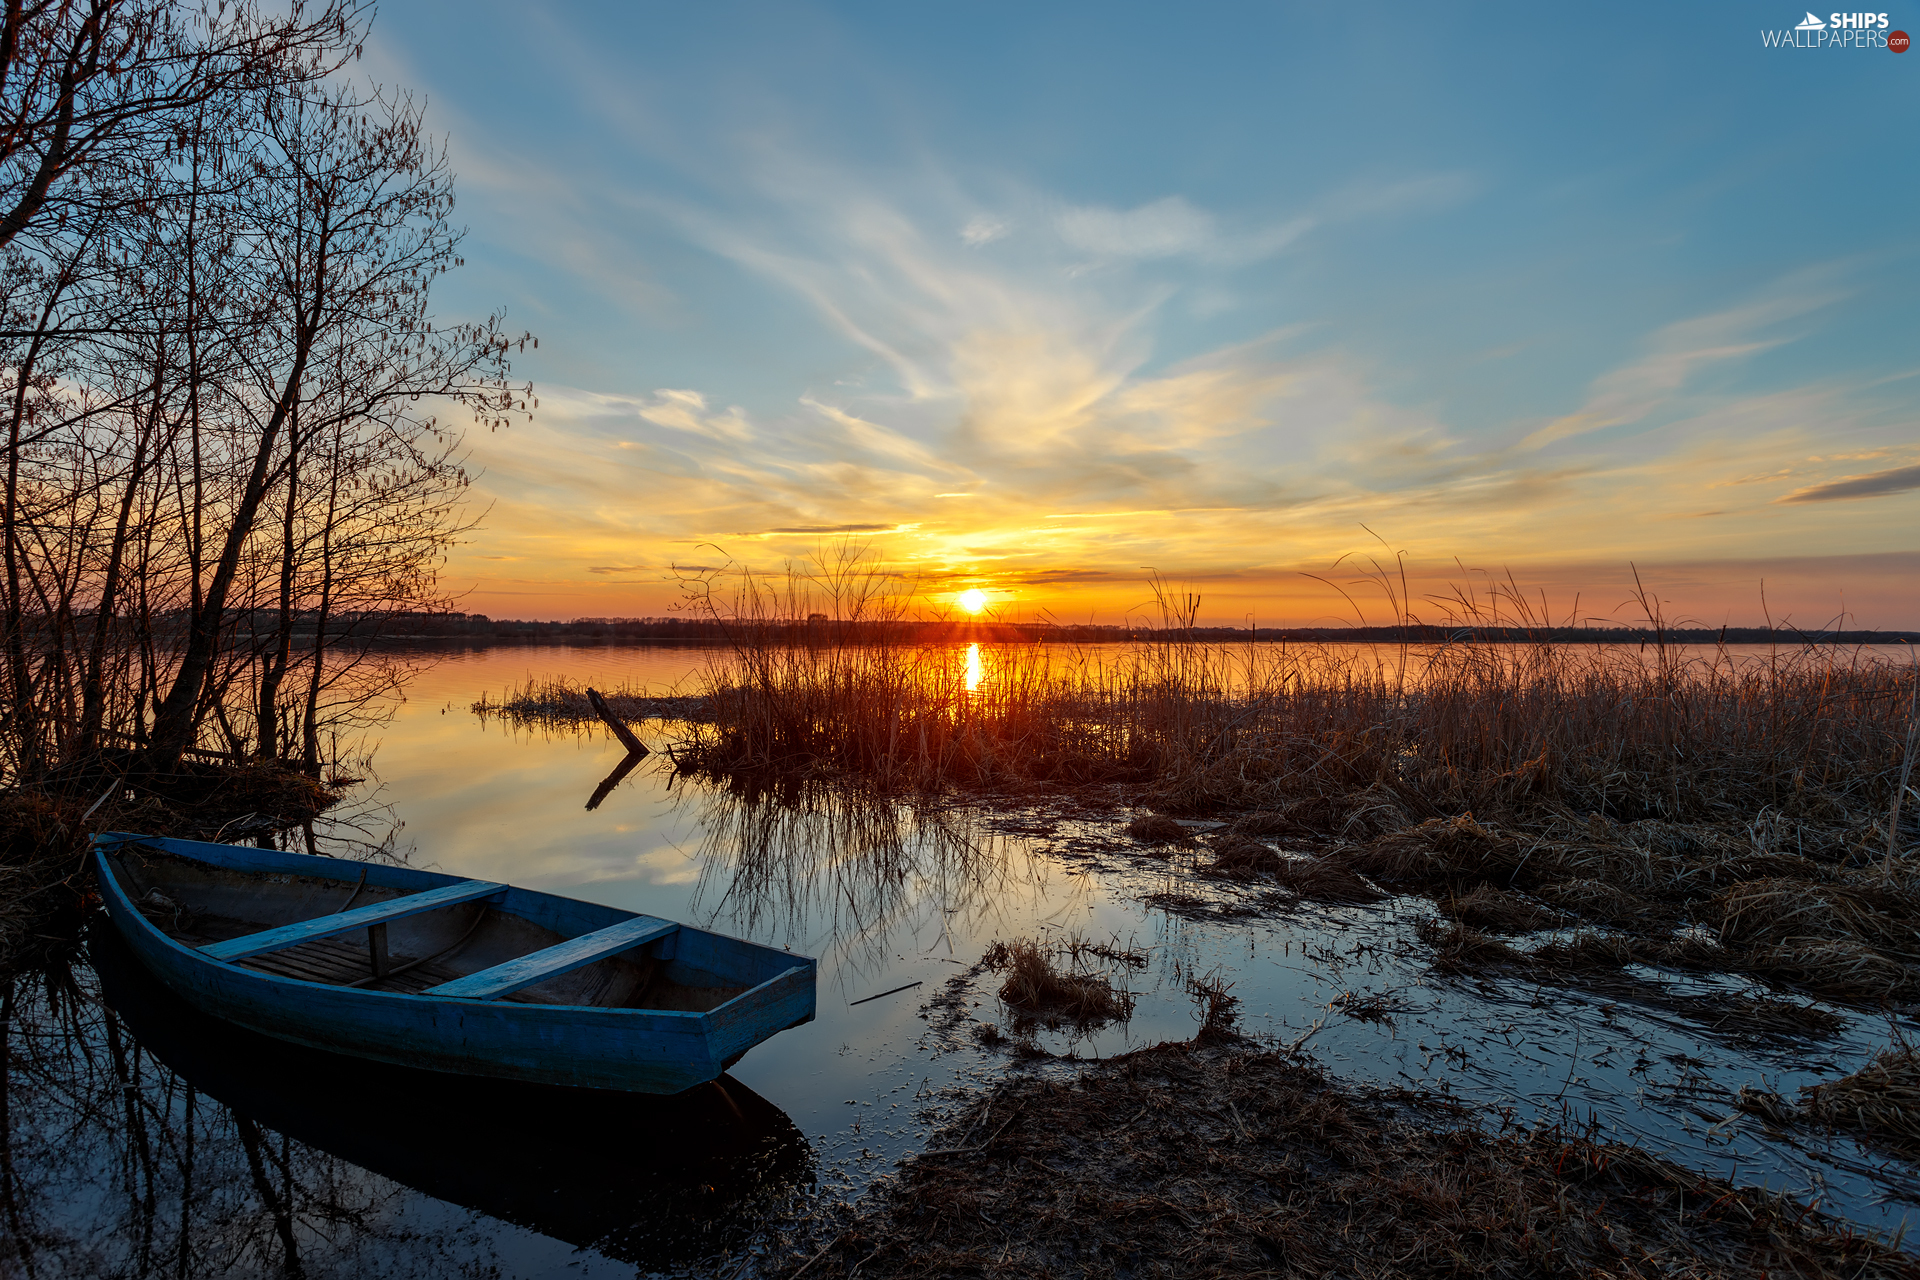 viewes, Great Sunsets, Boat, trees, lake